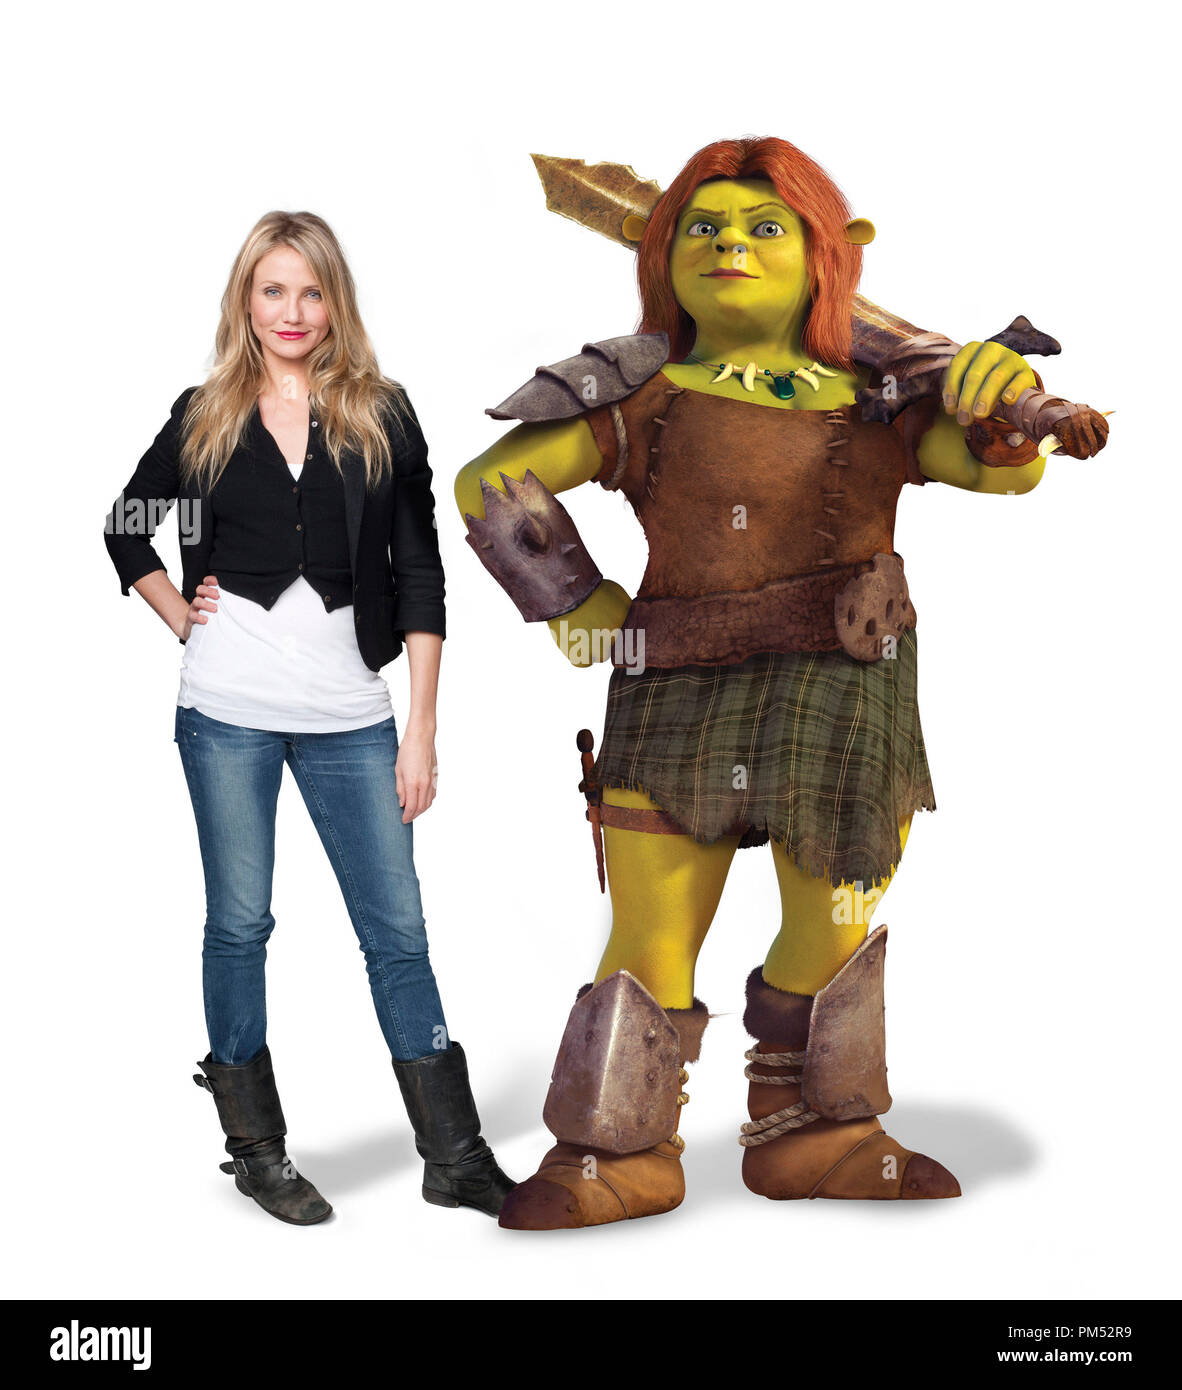 Cameron Diaz Voices Princess Fiona In Shrek Forever After C 2010 Dreamworks Animation Llc All Rights Reserved Stock Photo Alamy